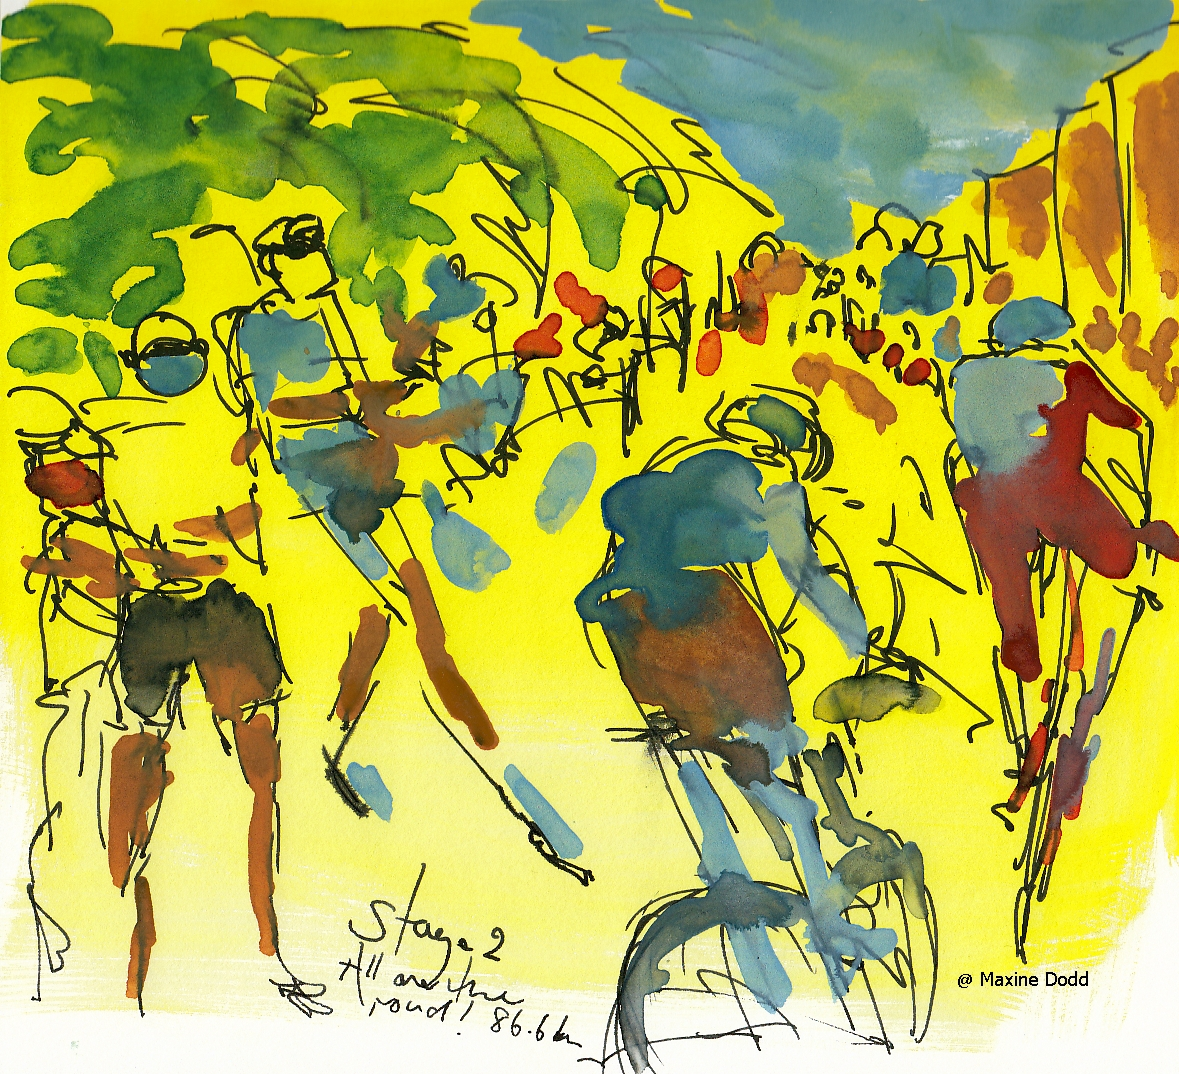 People all over the road - from Stage 2 - watercolour, pen and ink painting by Maxine Dodd